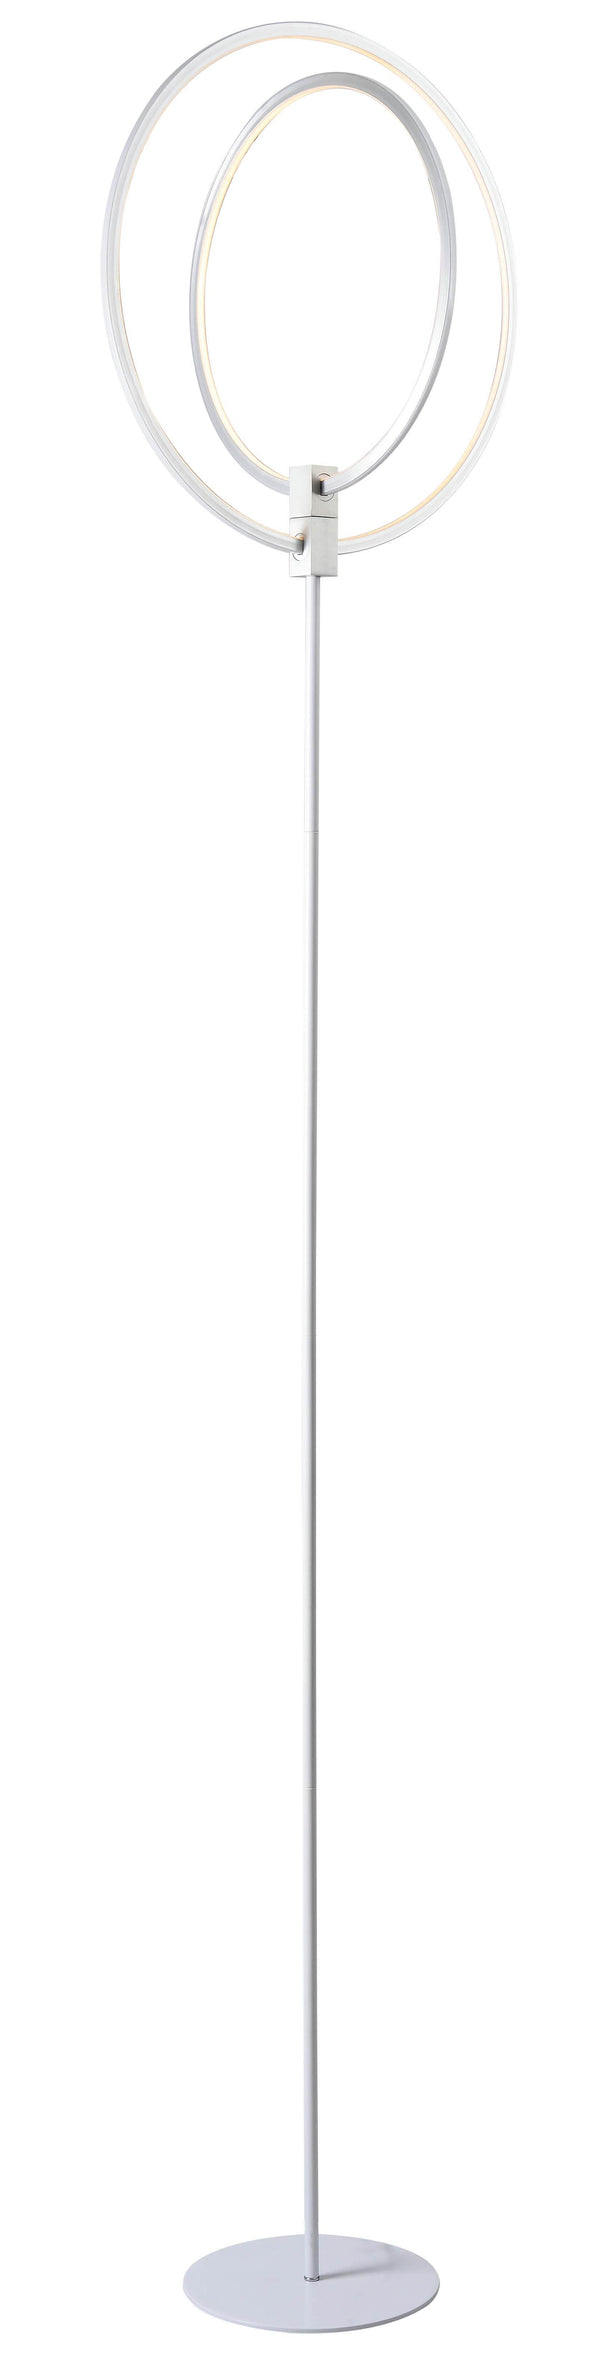 Aura Floor Lamp